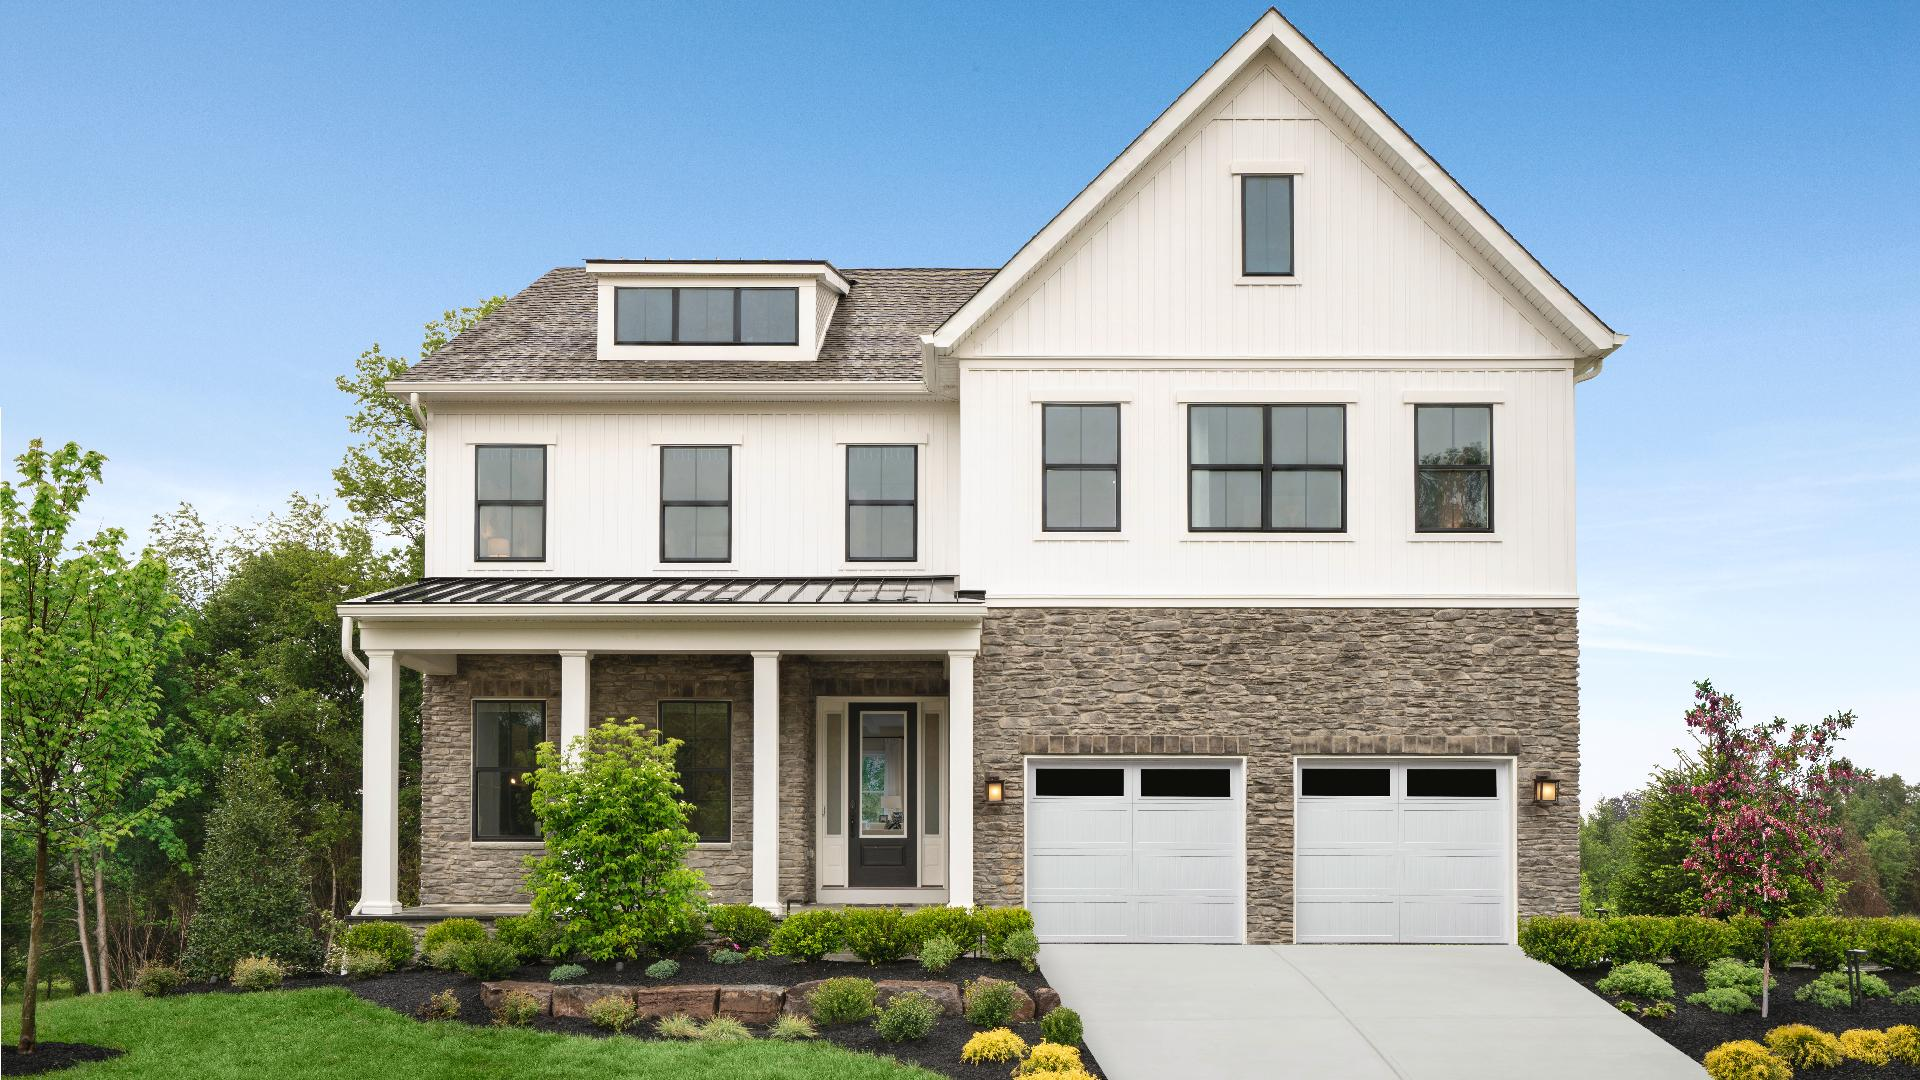 Limited single-family homes remain